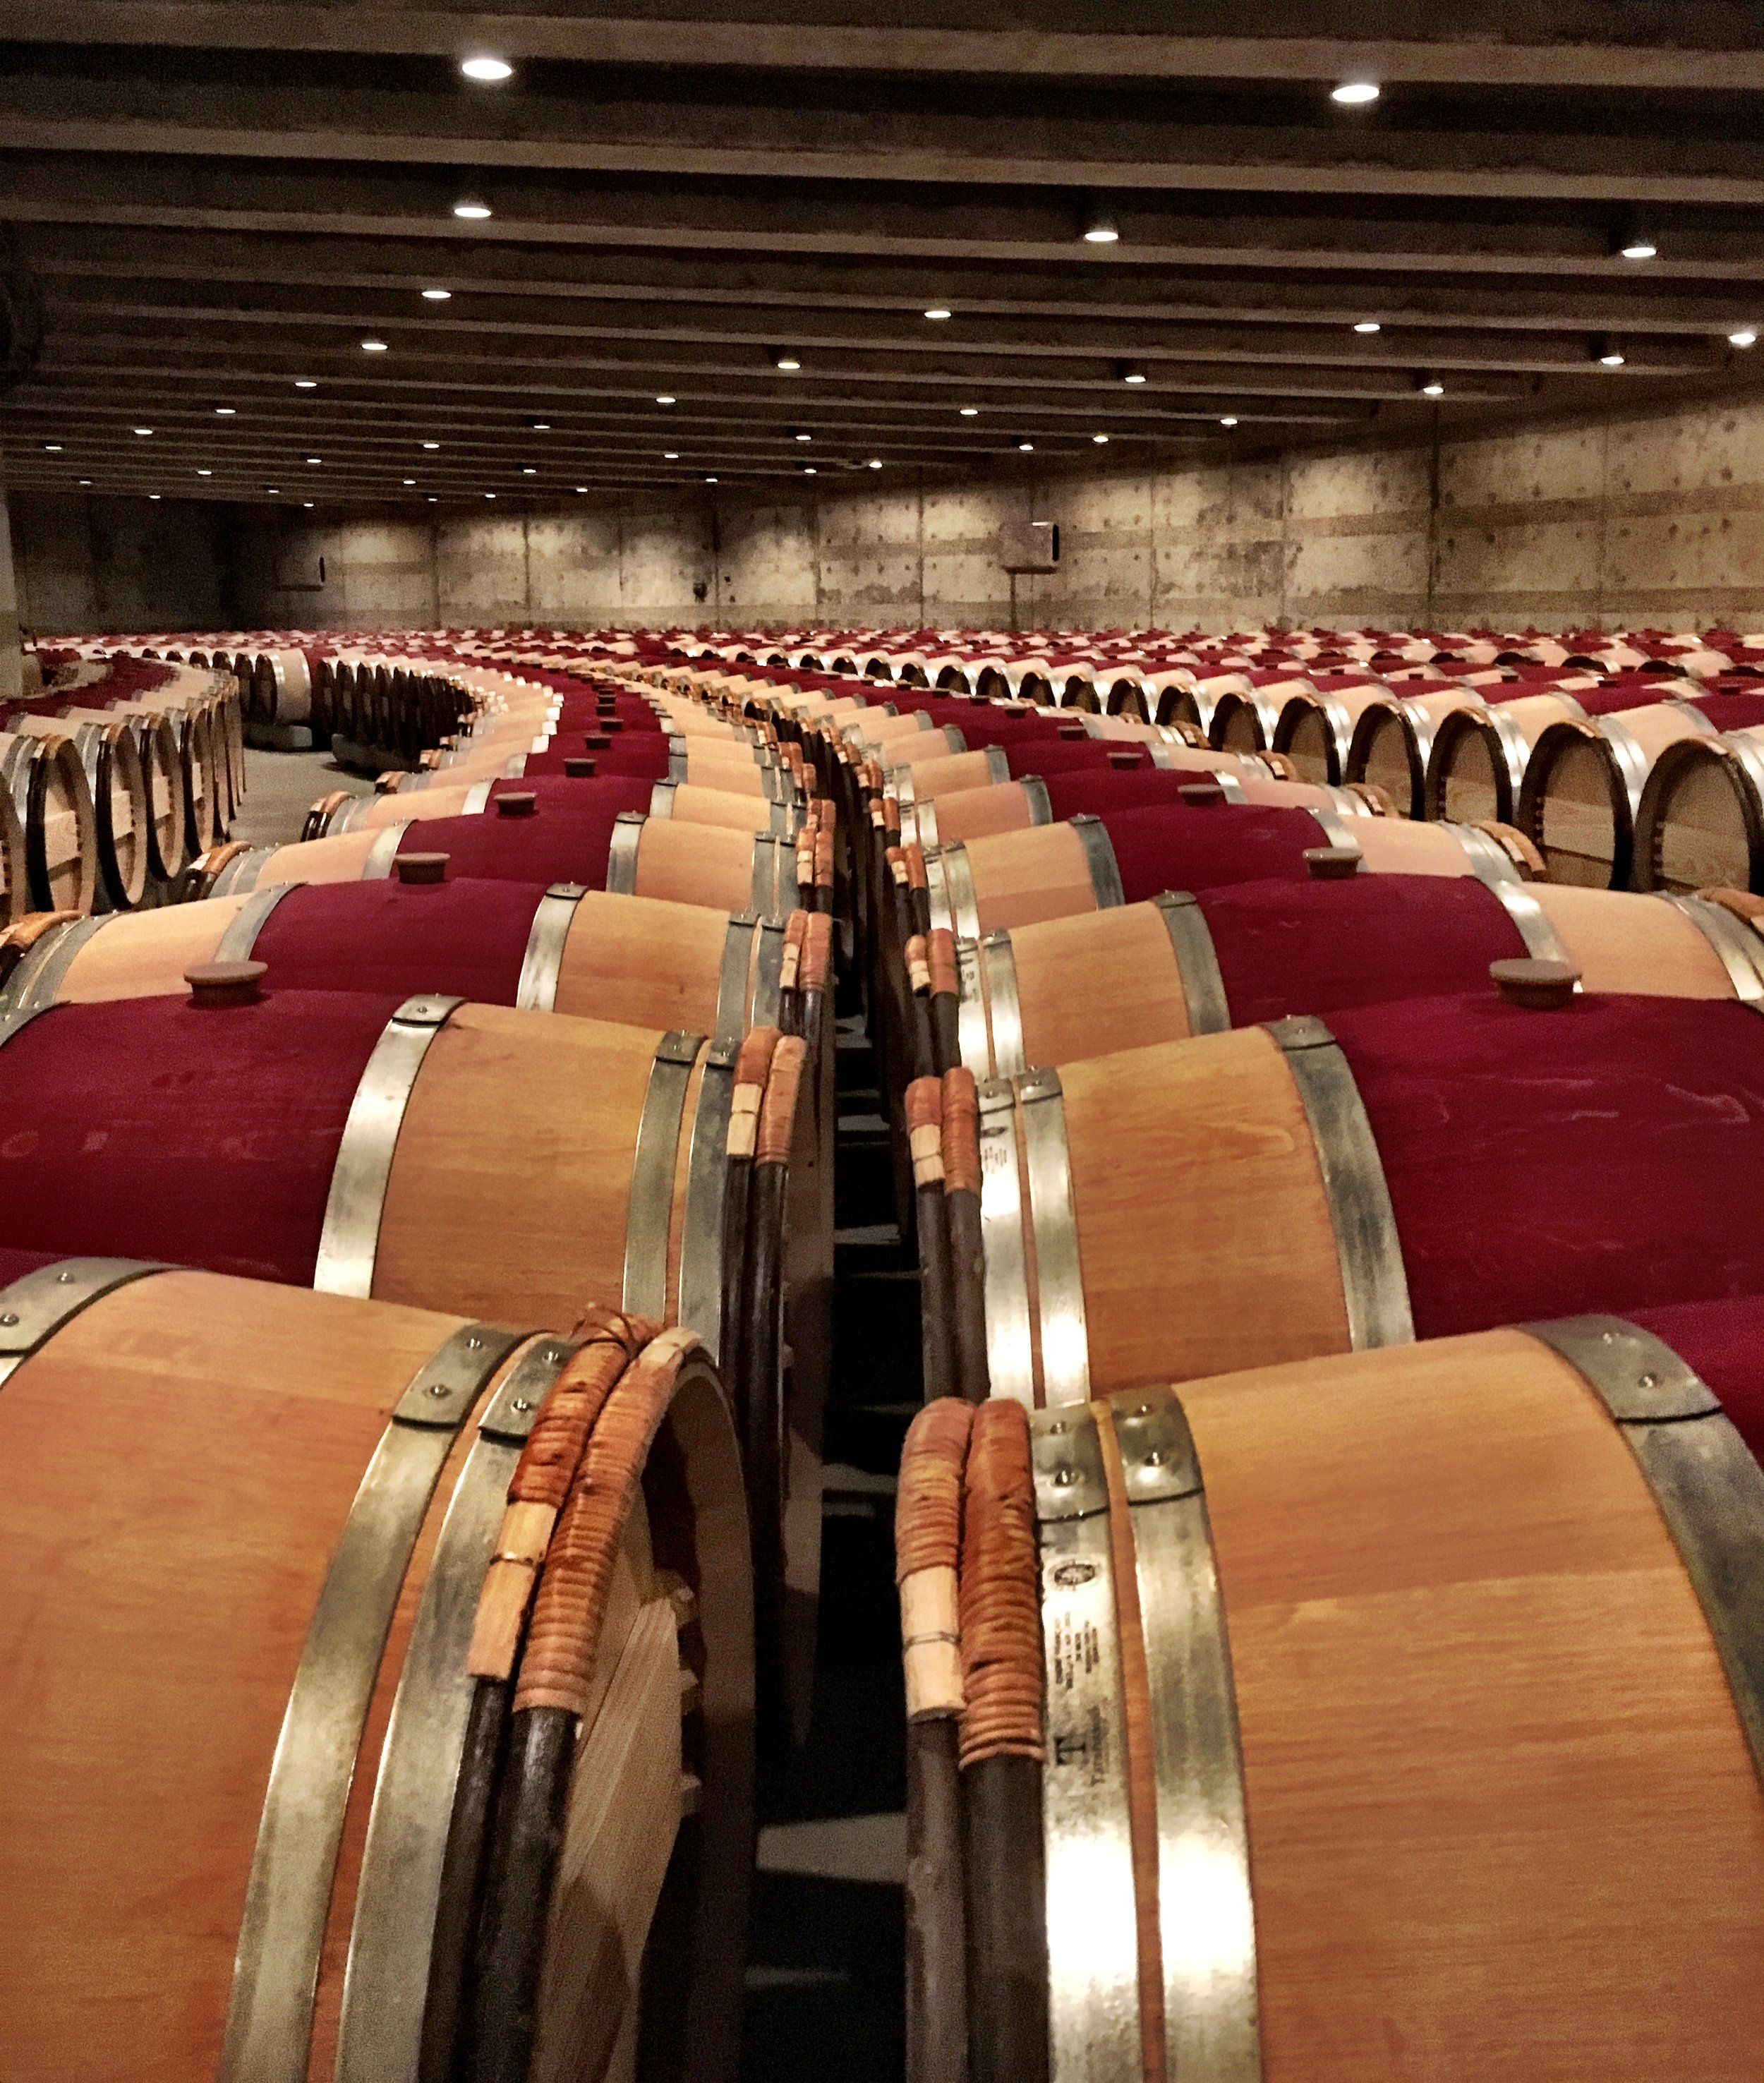 Opus One's wine cellar